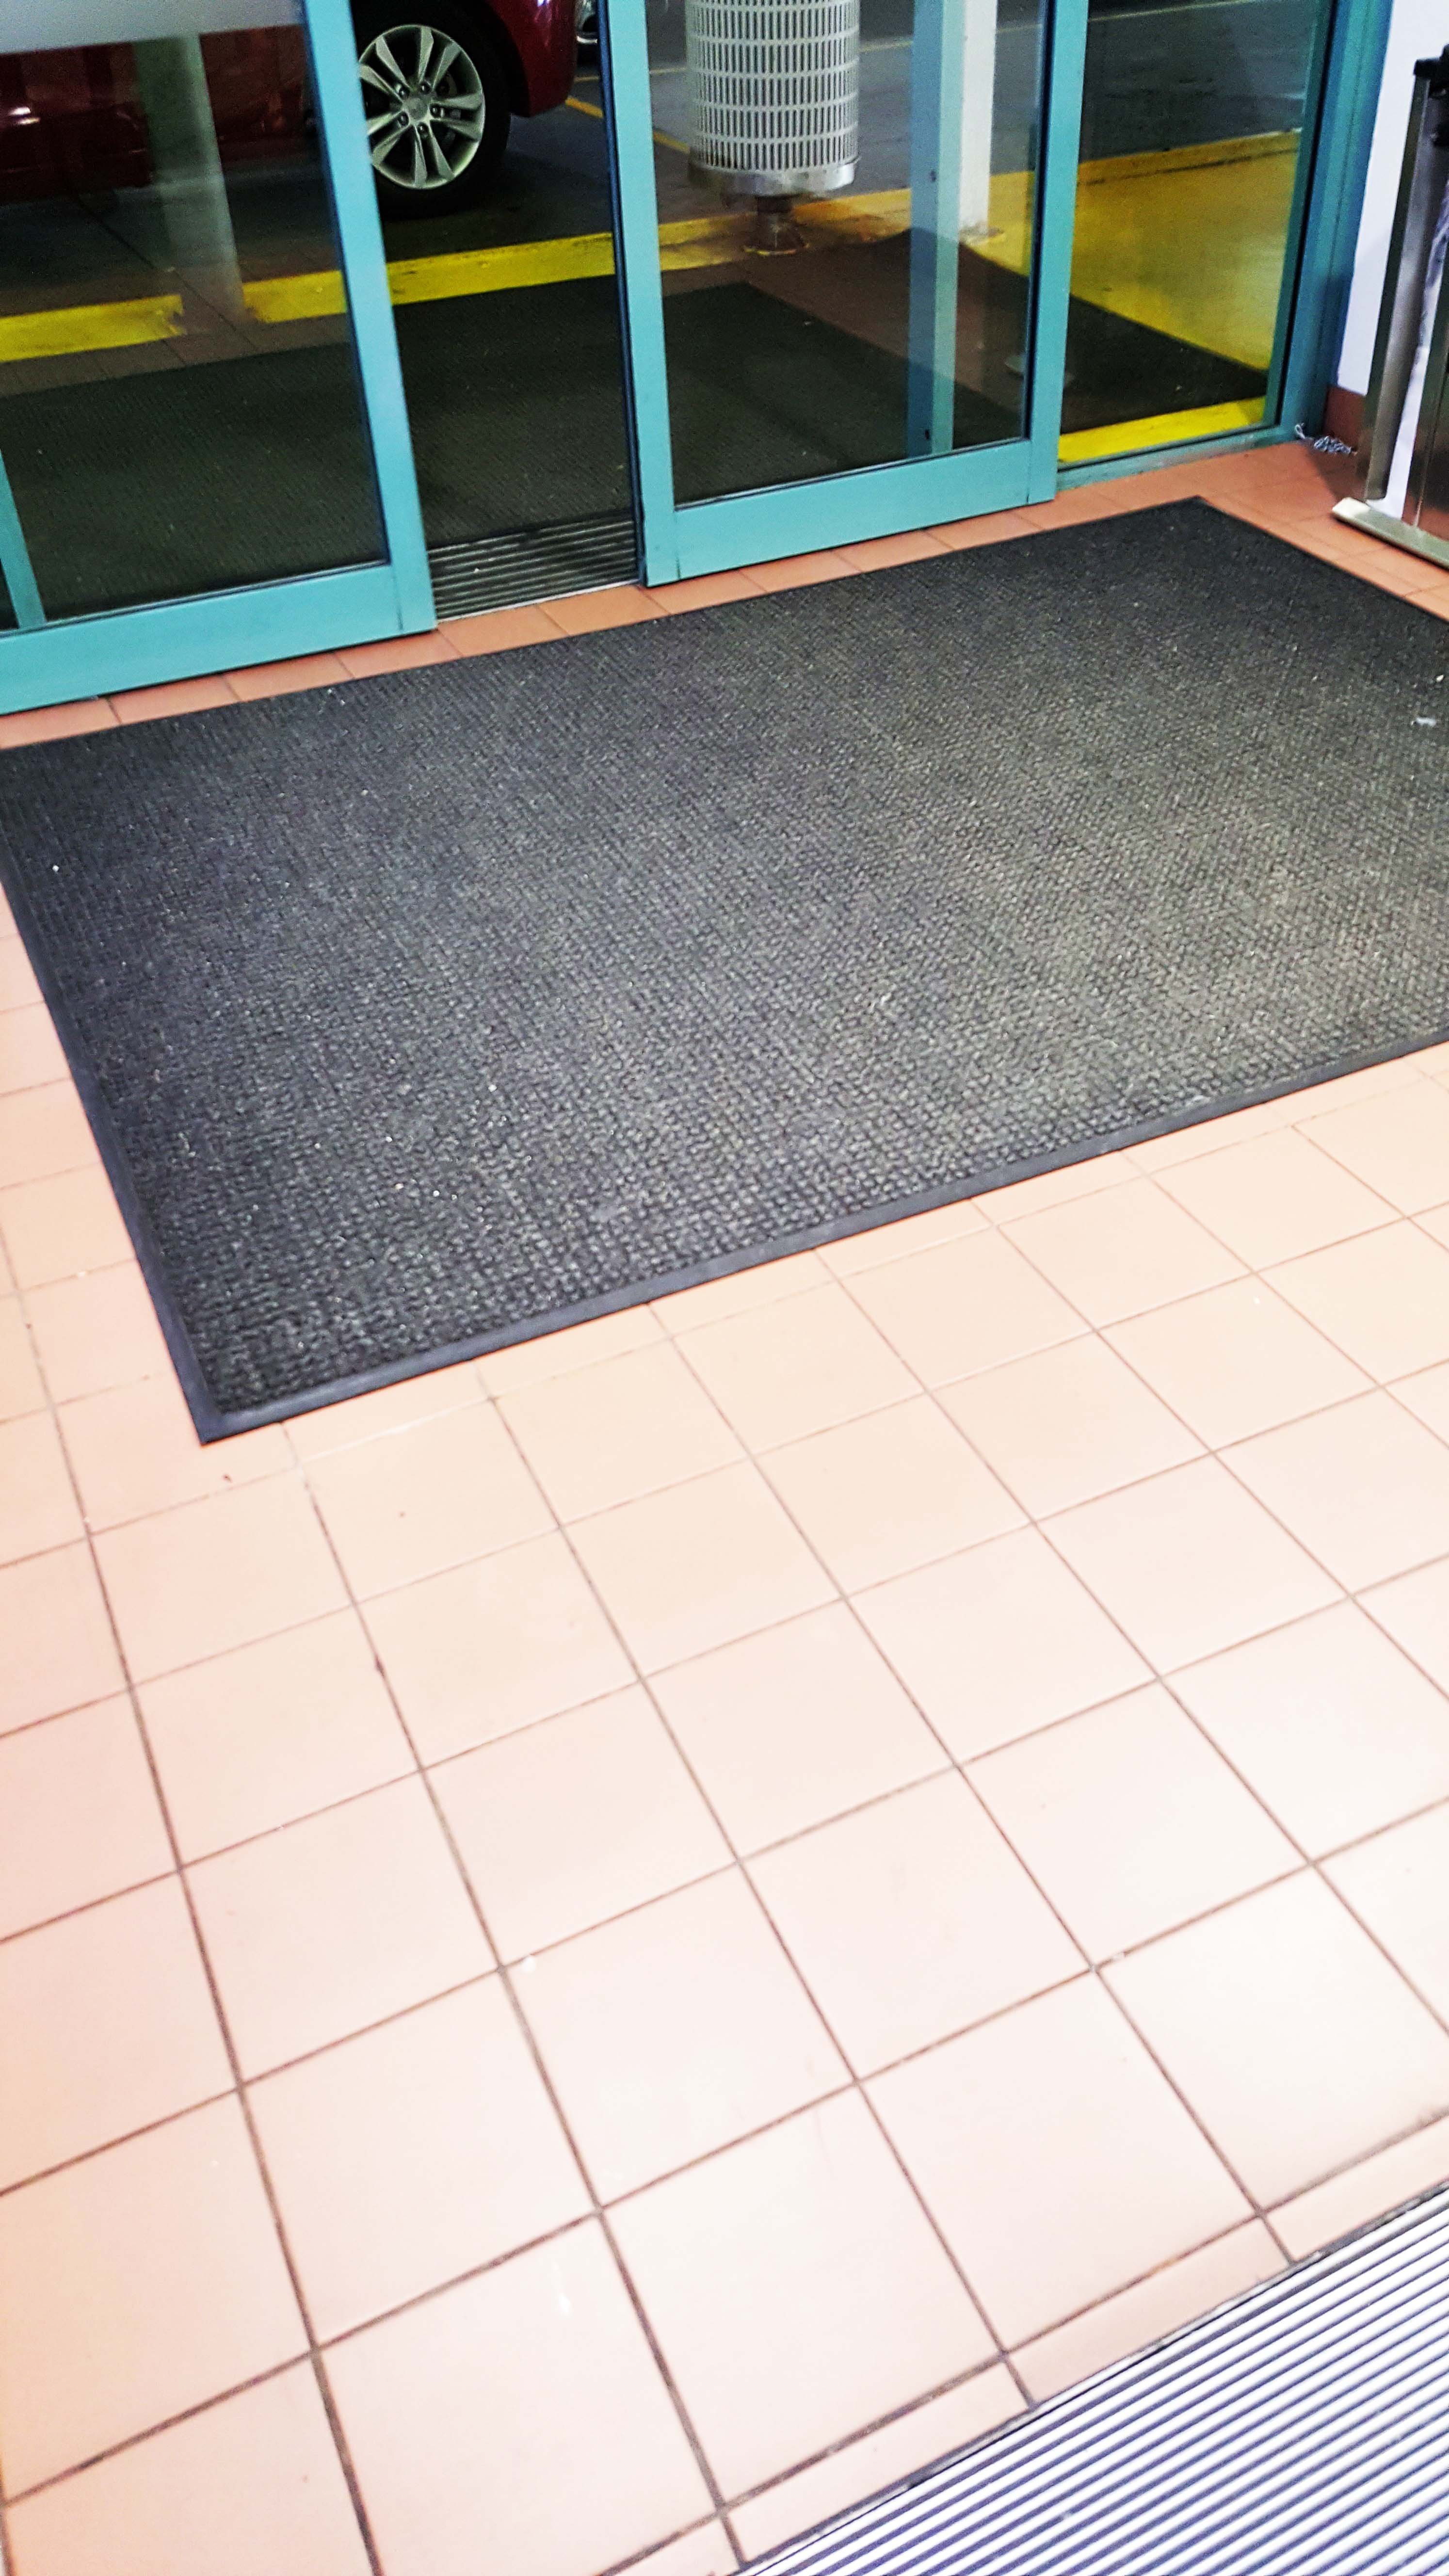 water mat door bungalow cfm options guard mats bungalowflooringwaterguardcordovaindooroutdoormat outdoor navy hayneedle cordova product flooring indoor